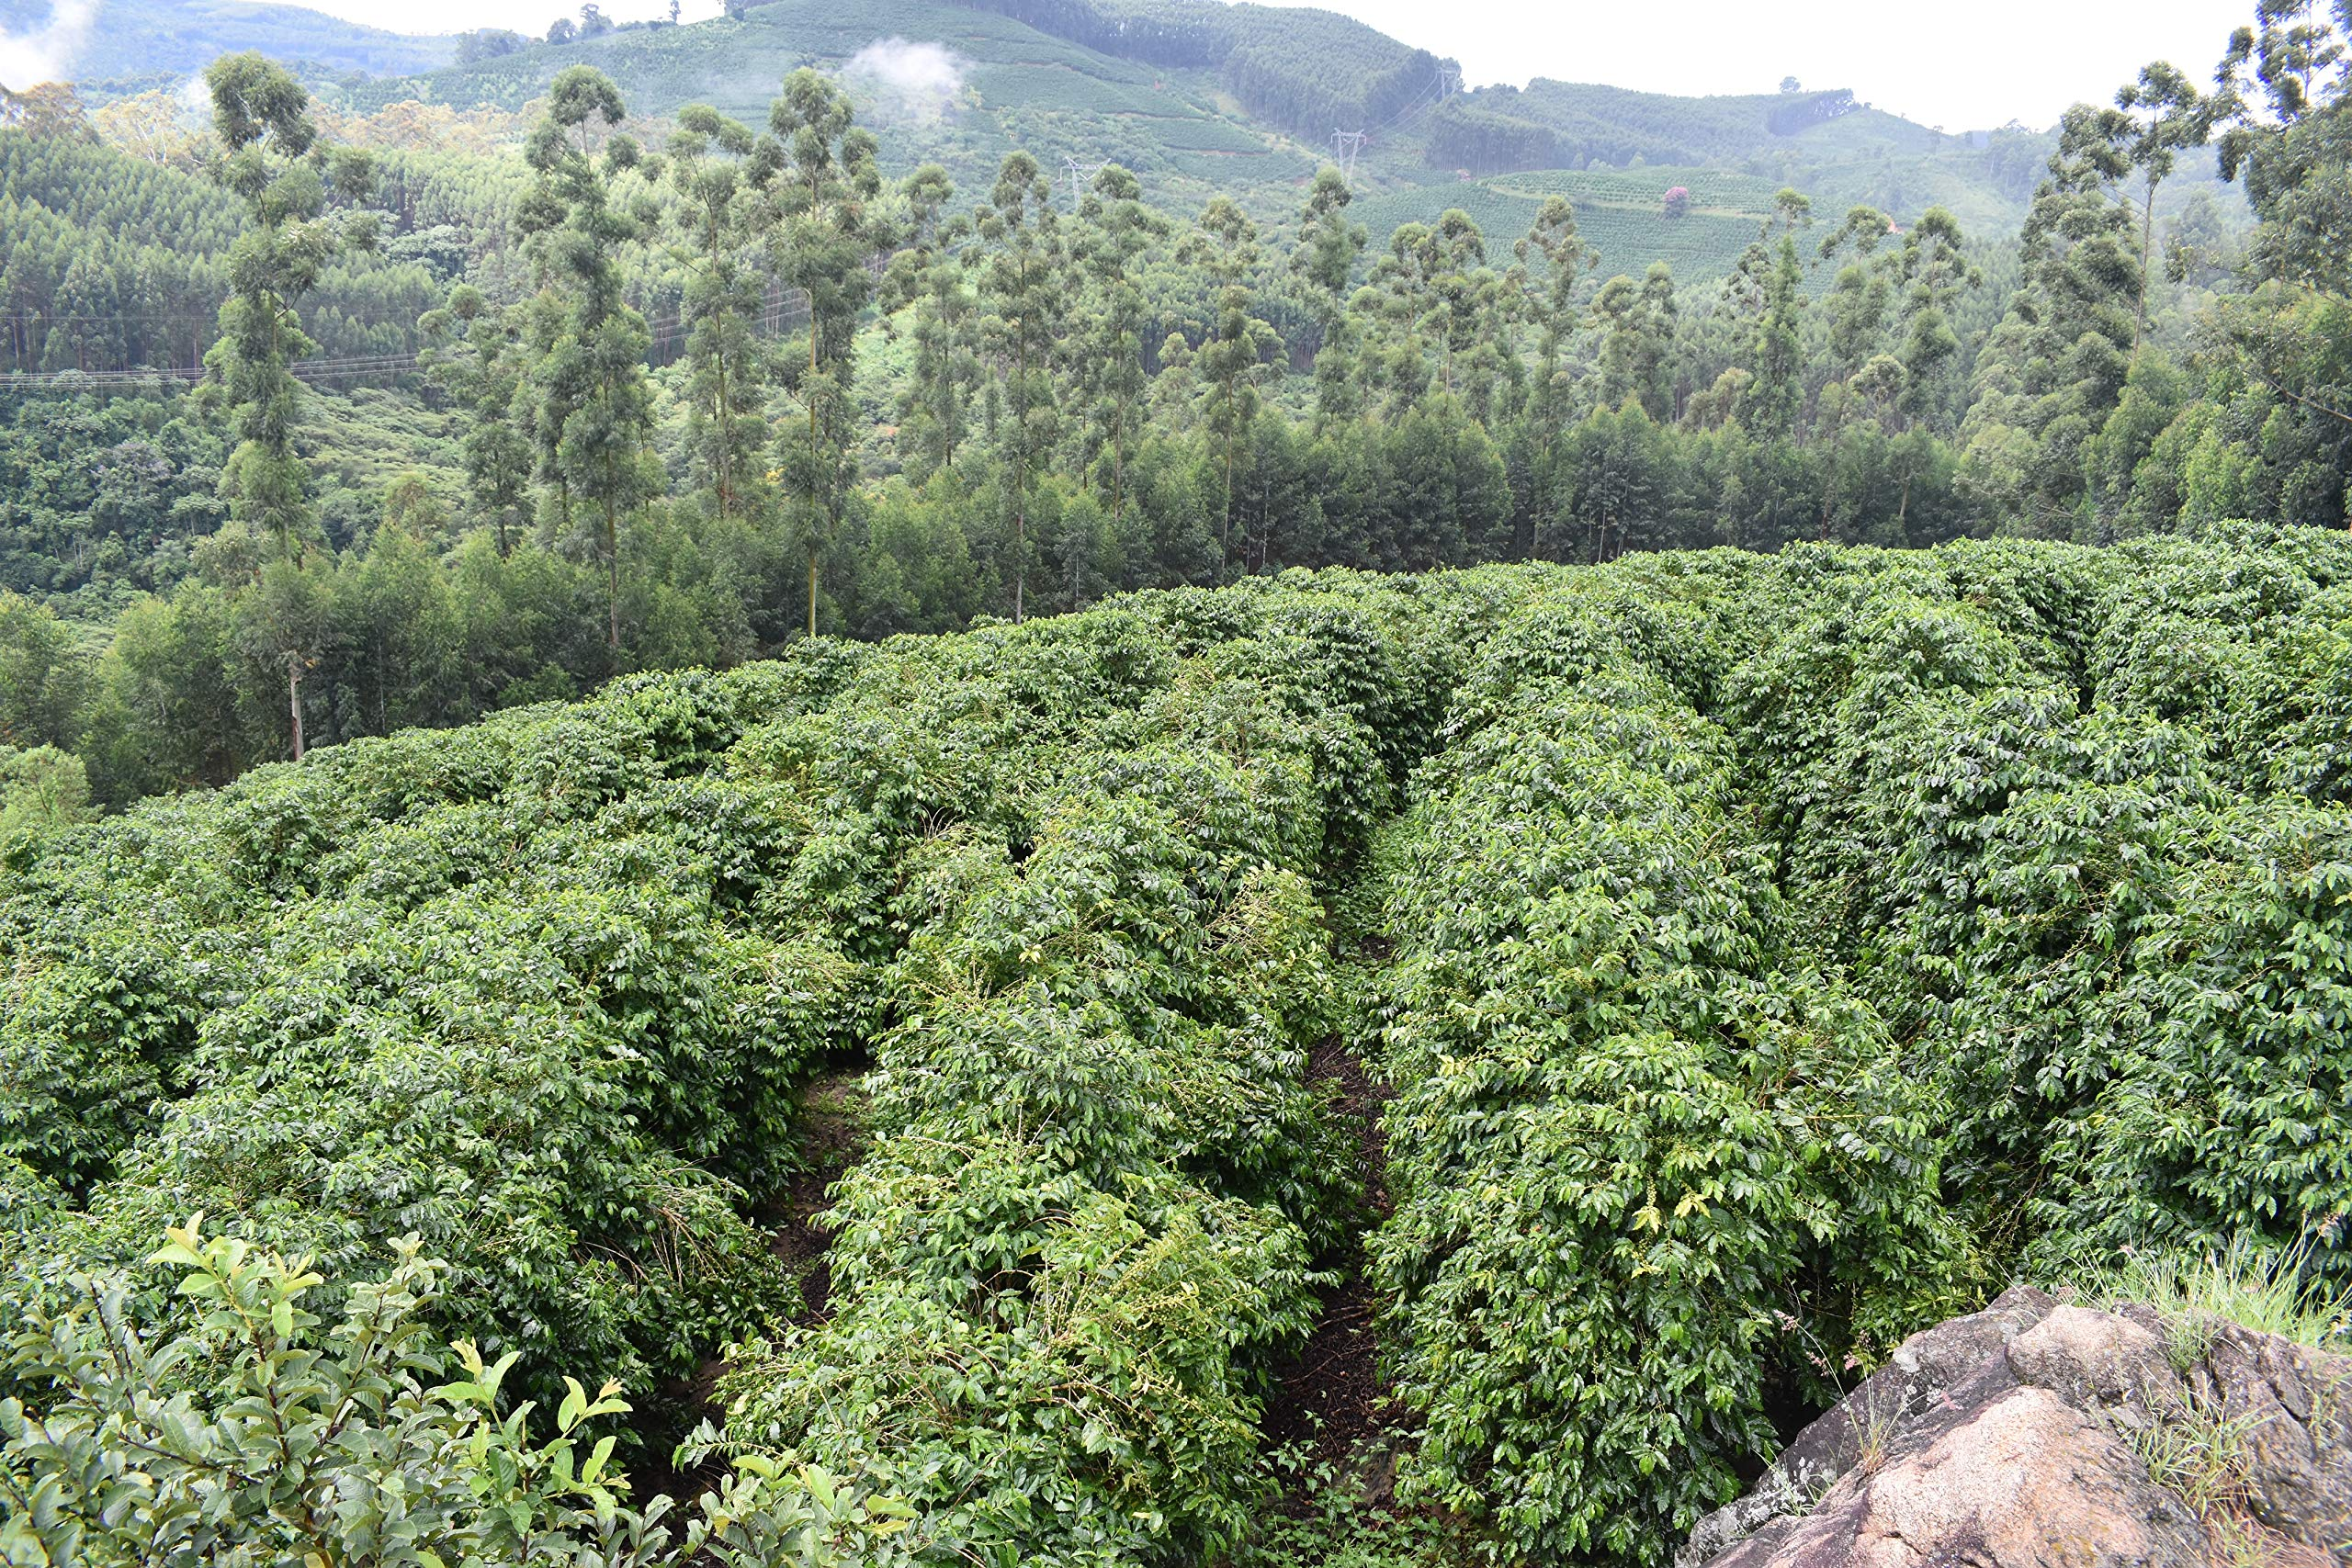 22 lbs BRAZIL SUL MINAS NATURAL PROCESS SPECIALTY AAA GREEN COFFEE by Invalsa Coffee (Image #4)